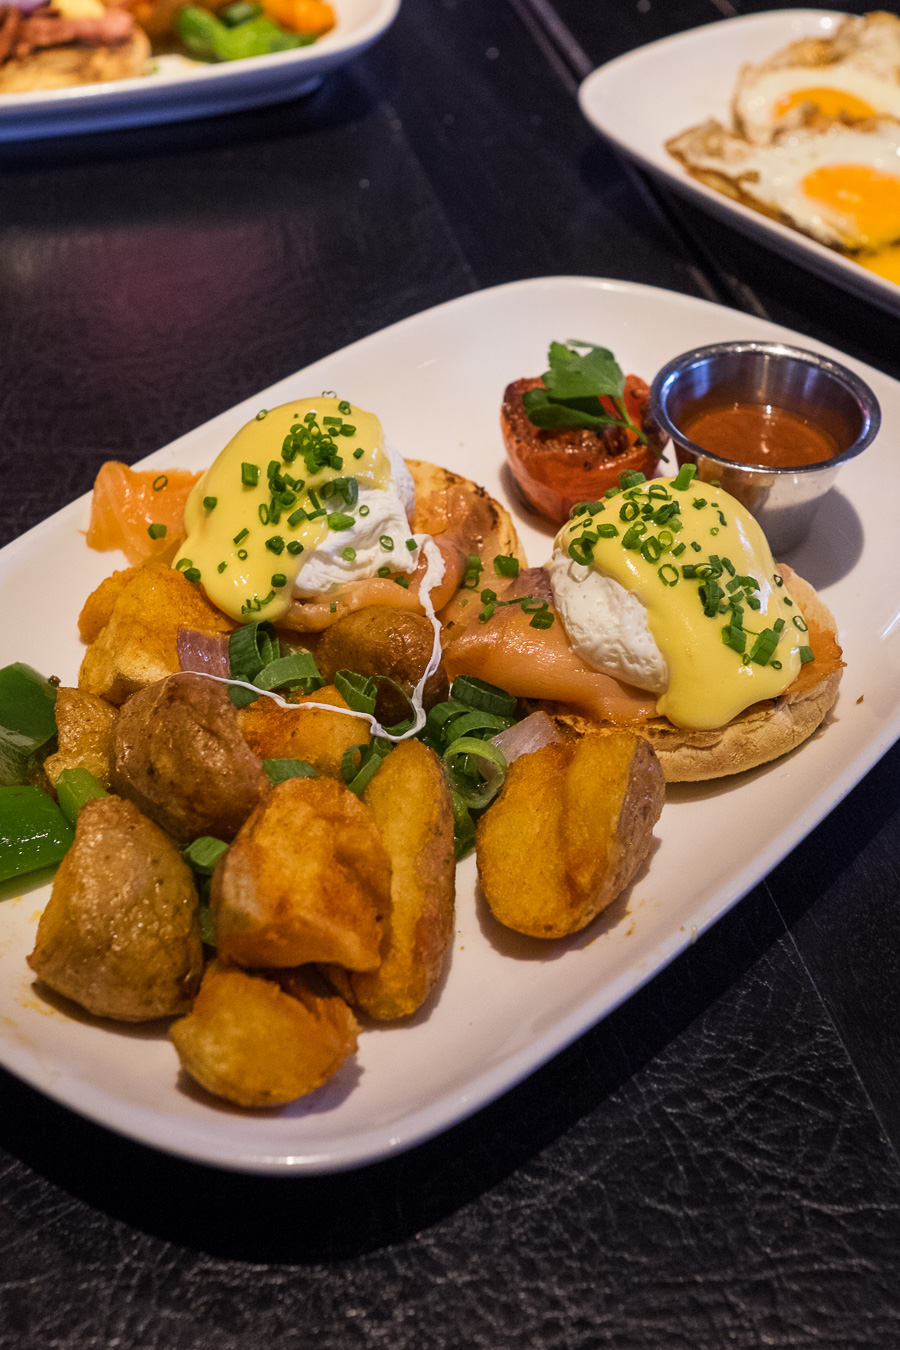 Smoked salmon Eggs Bennie (AU$18)